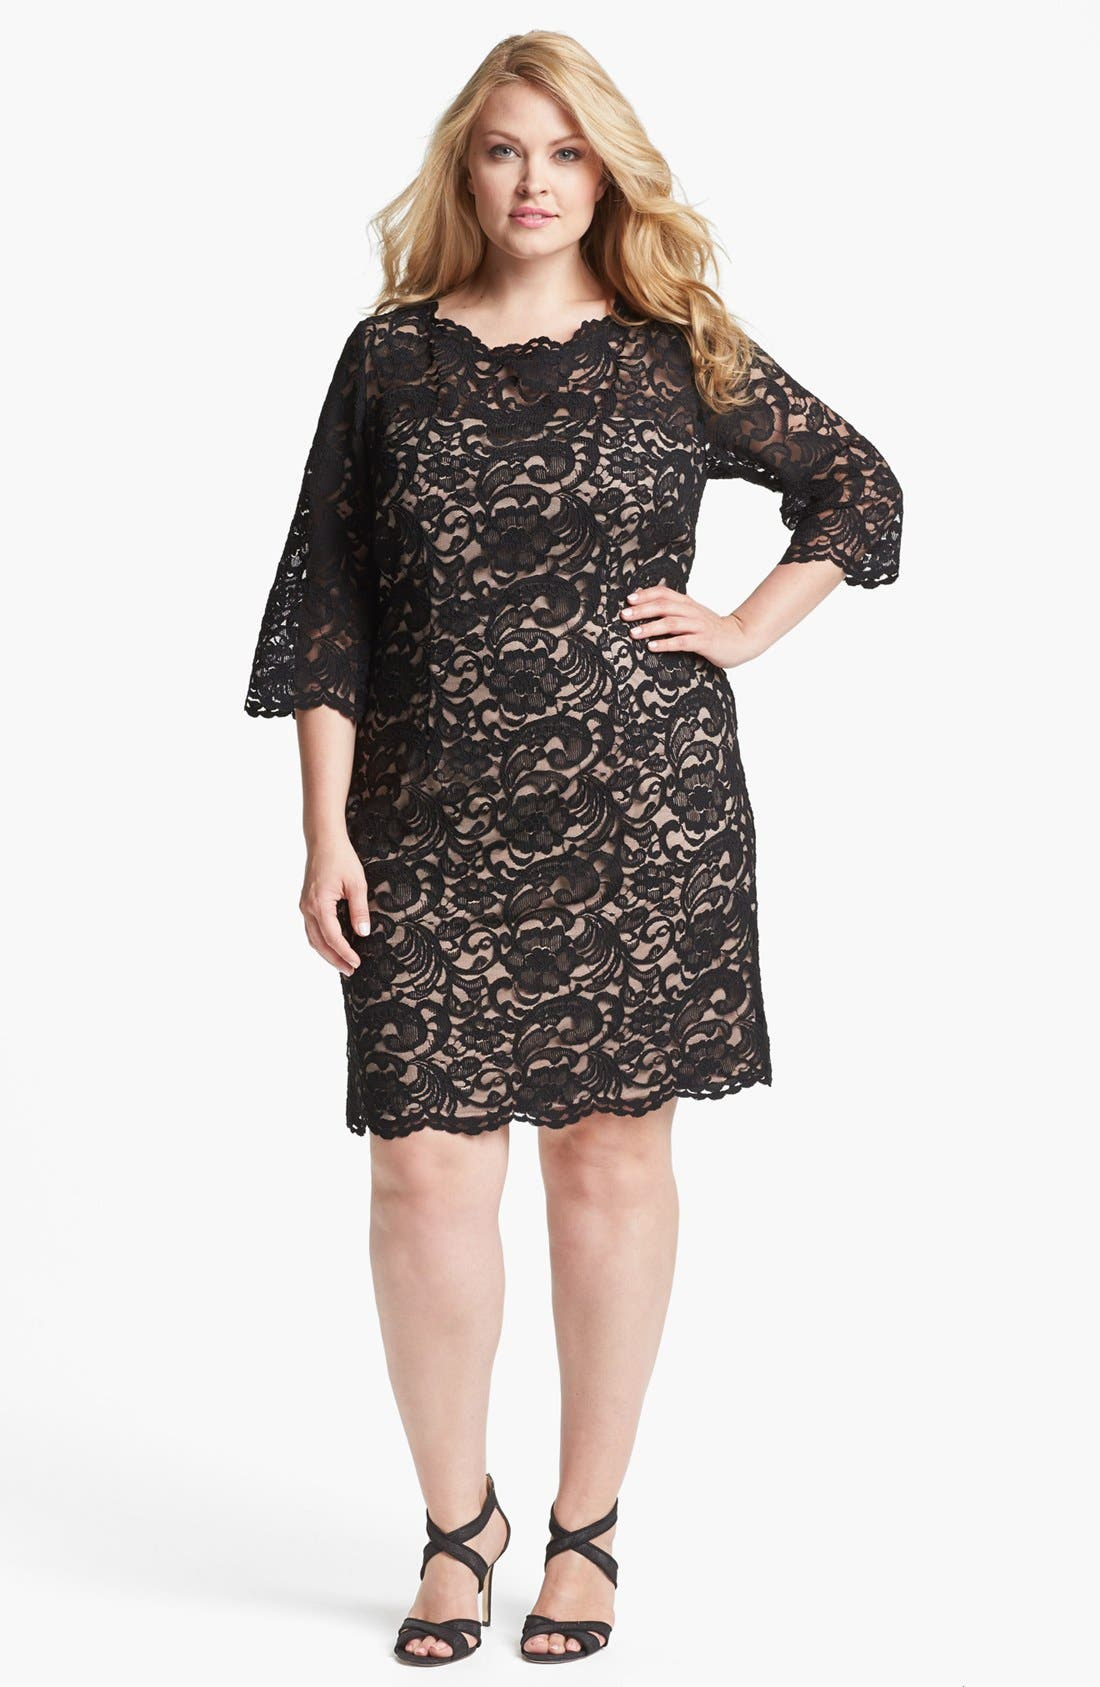 Alternate Image 1 Selected - Xscape Lace Shift Dress (Plus Size)